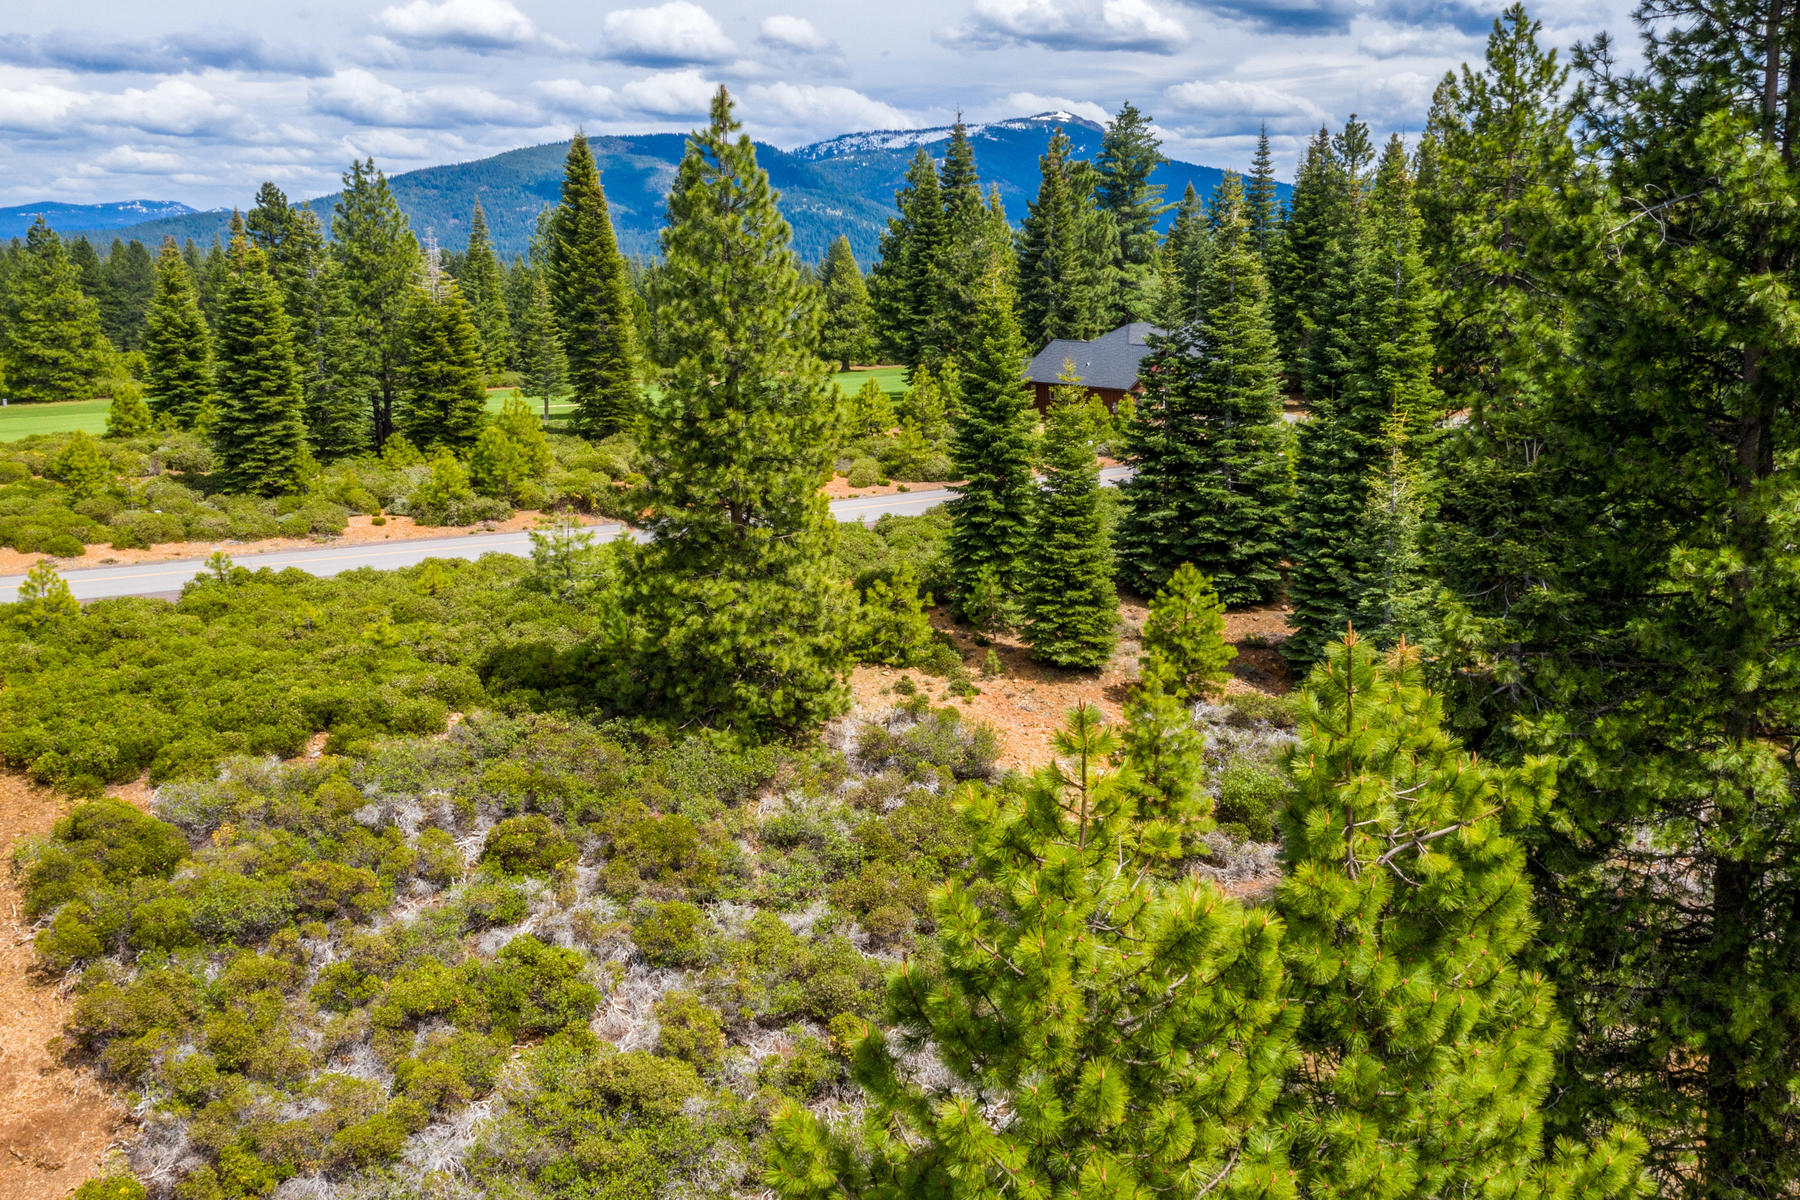 Additional photo for property listing at 196 Dinsmore Drive, Lake Almanor, CA 96137 196 Dinsmore Drive Lake Almanor, California 96137 United States